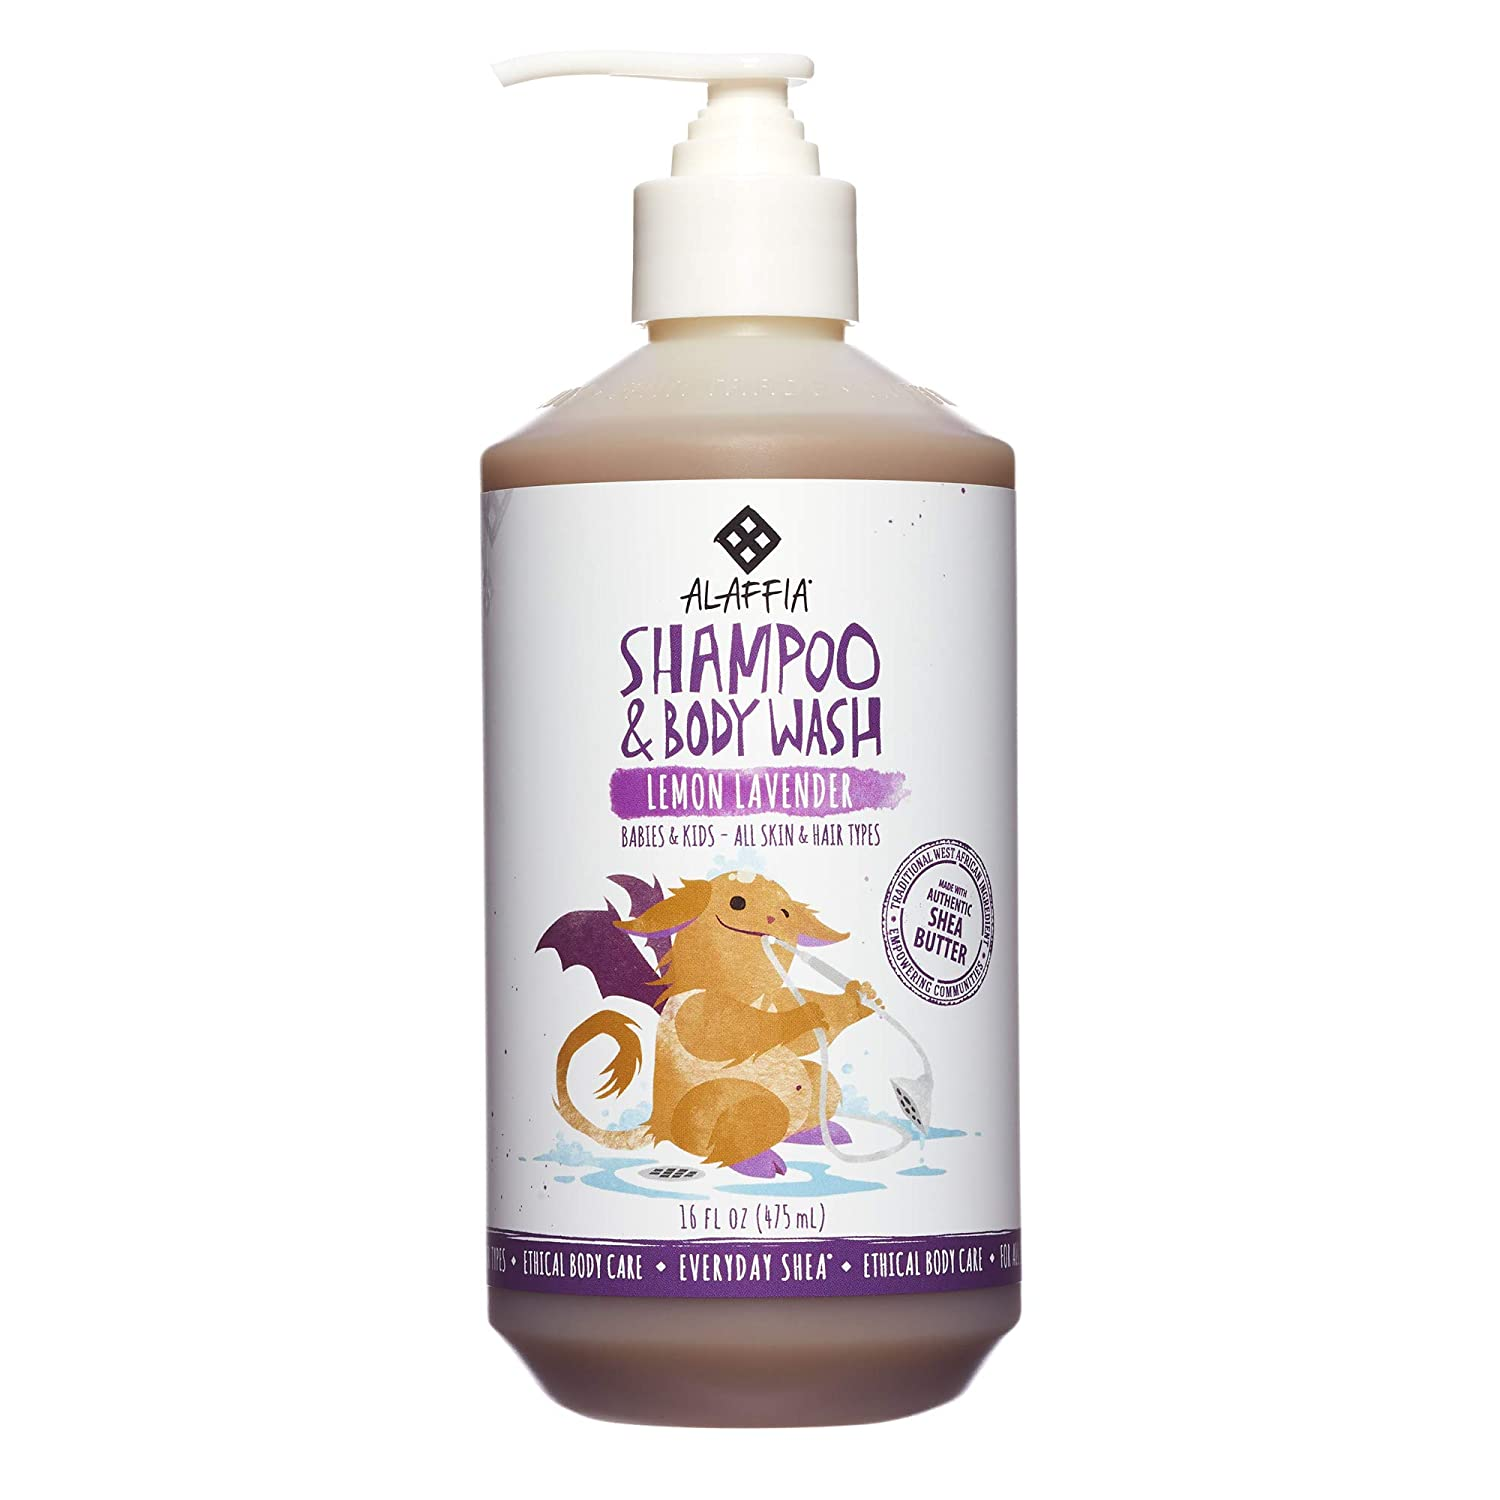 Alaffia - Everyday Shea Shampoo and Body Wash, Babies and Kids, Gentle and Calming Support for Soft Hair and Skin with Shea Butter, Neem, and Coconut Oil, Fair Trade, Lemon Lavender, 16 Ounces B004URU37Y